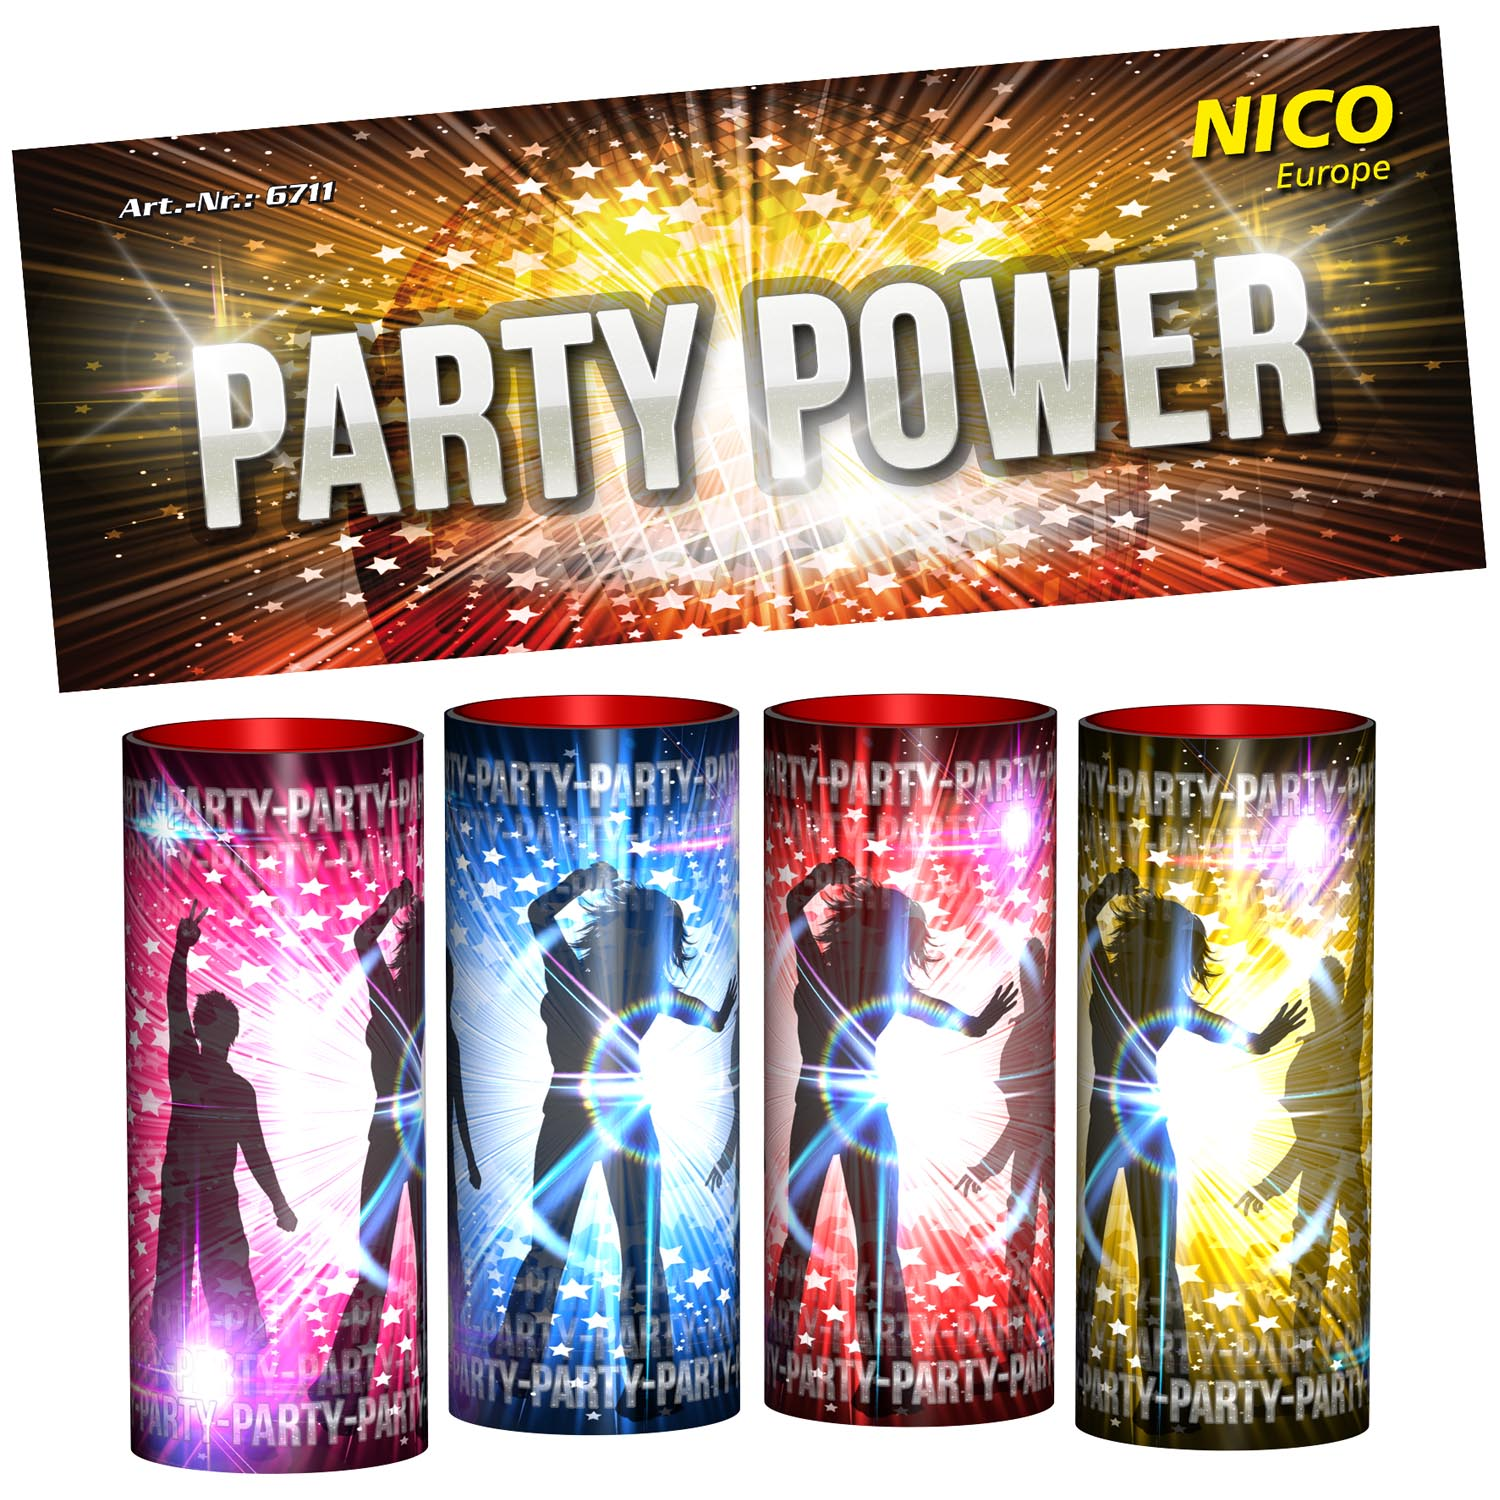 Party Power, 4er-Btl.